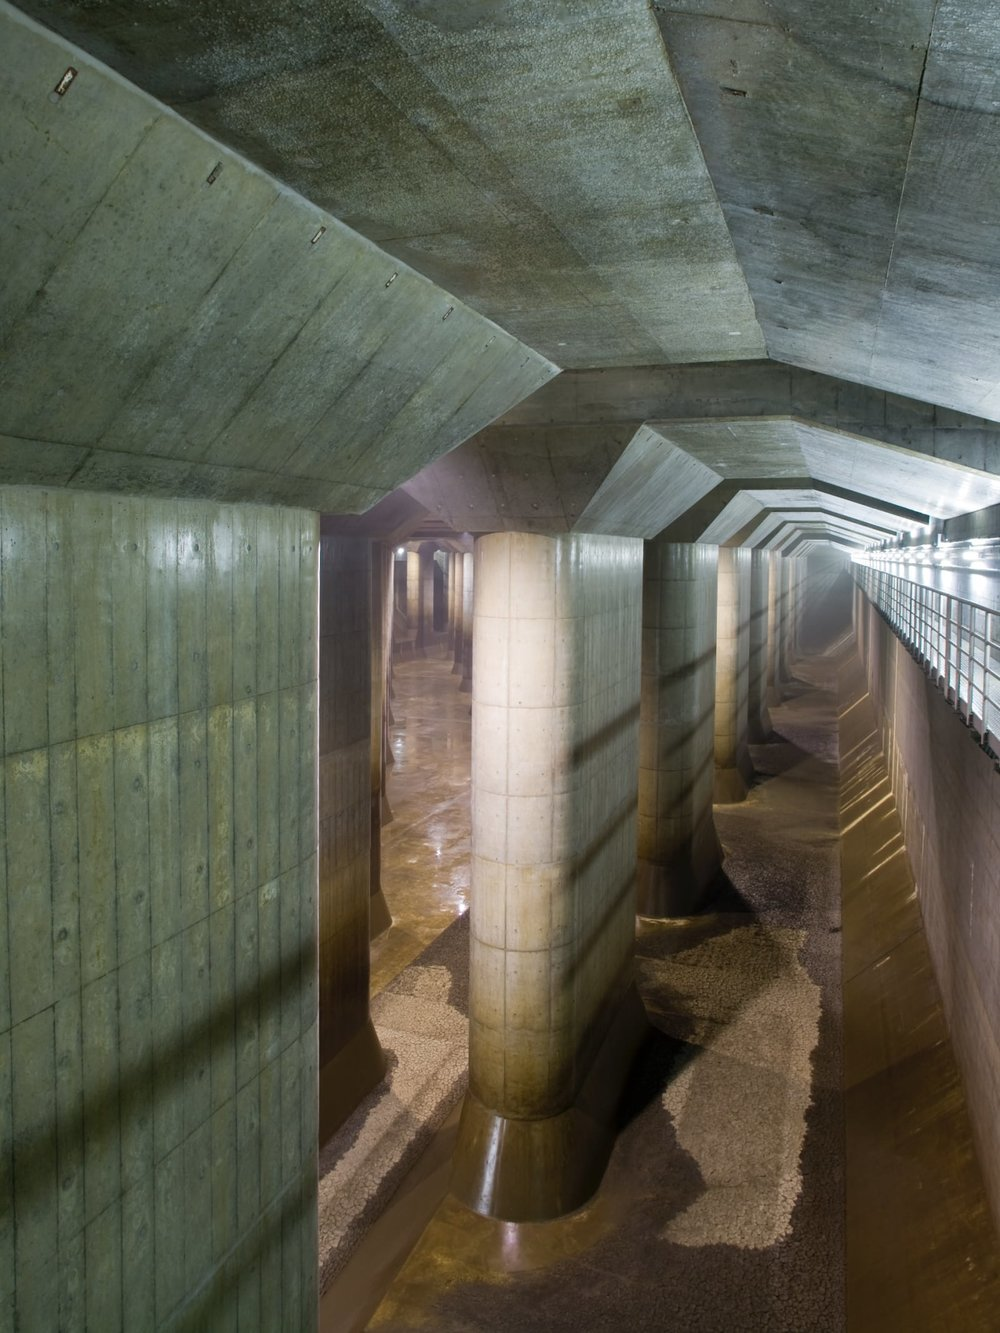 alessio-guarino-metropolitan-area-outer-underground-discharge-channel-2.jpg